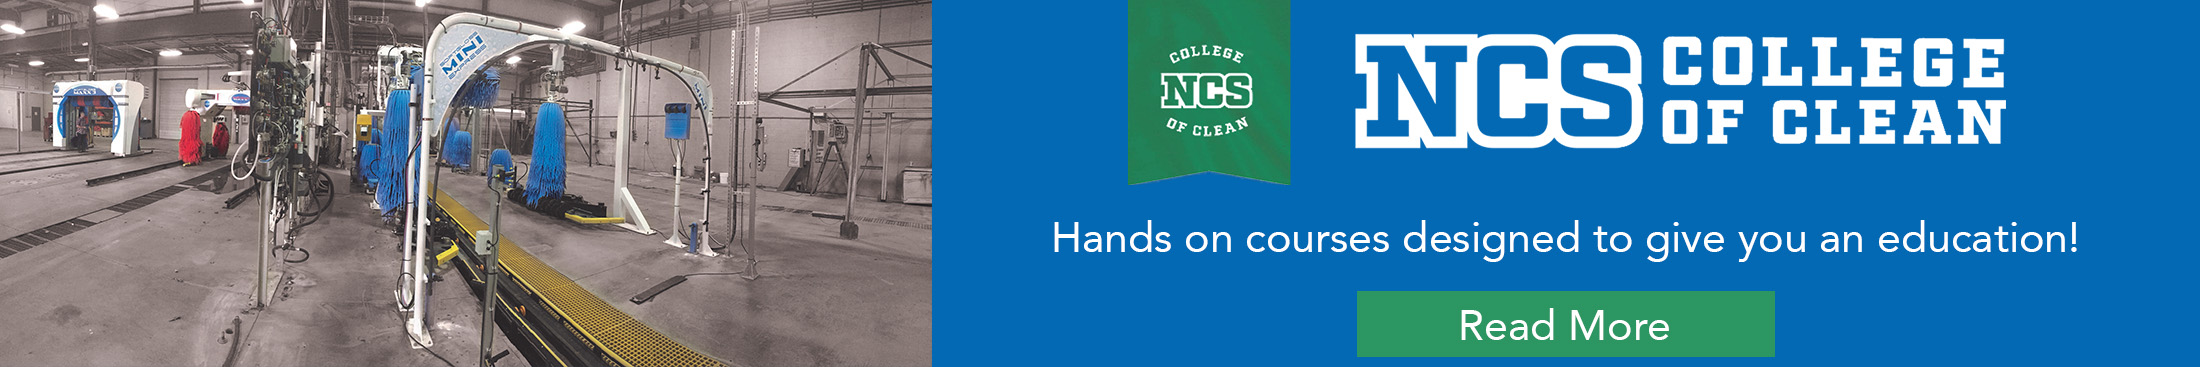 NCS College of Clean | MacNeil Wash Systems